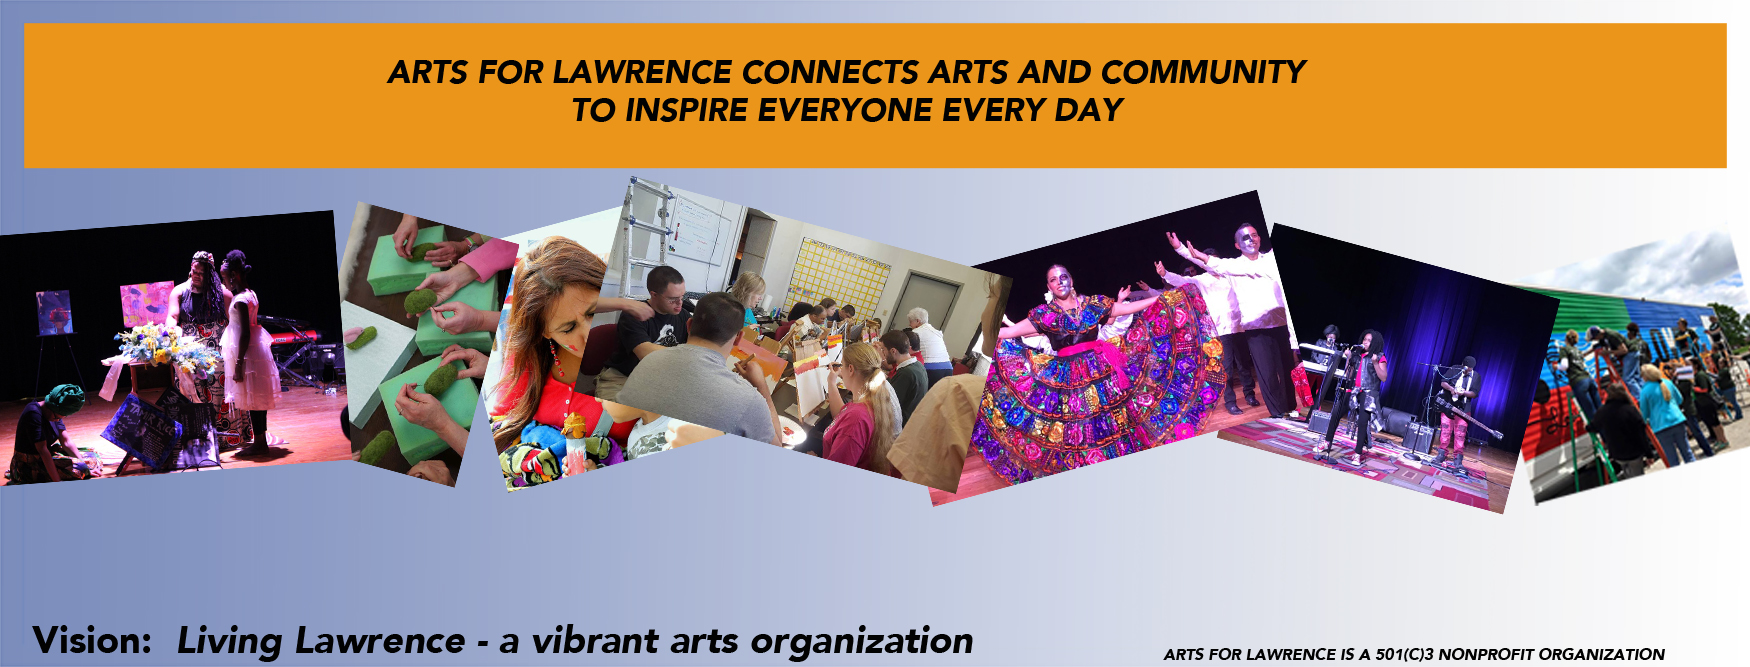 Who is Arts for Lawrence?